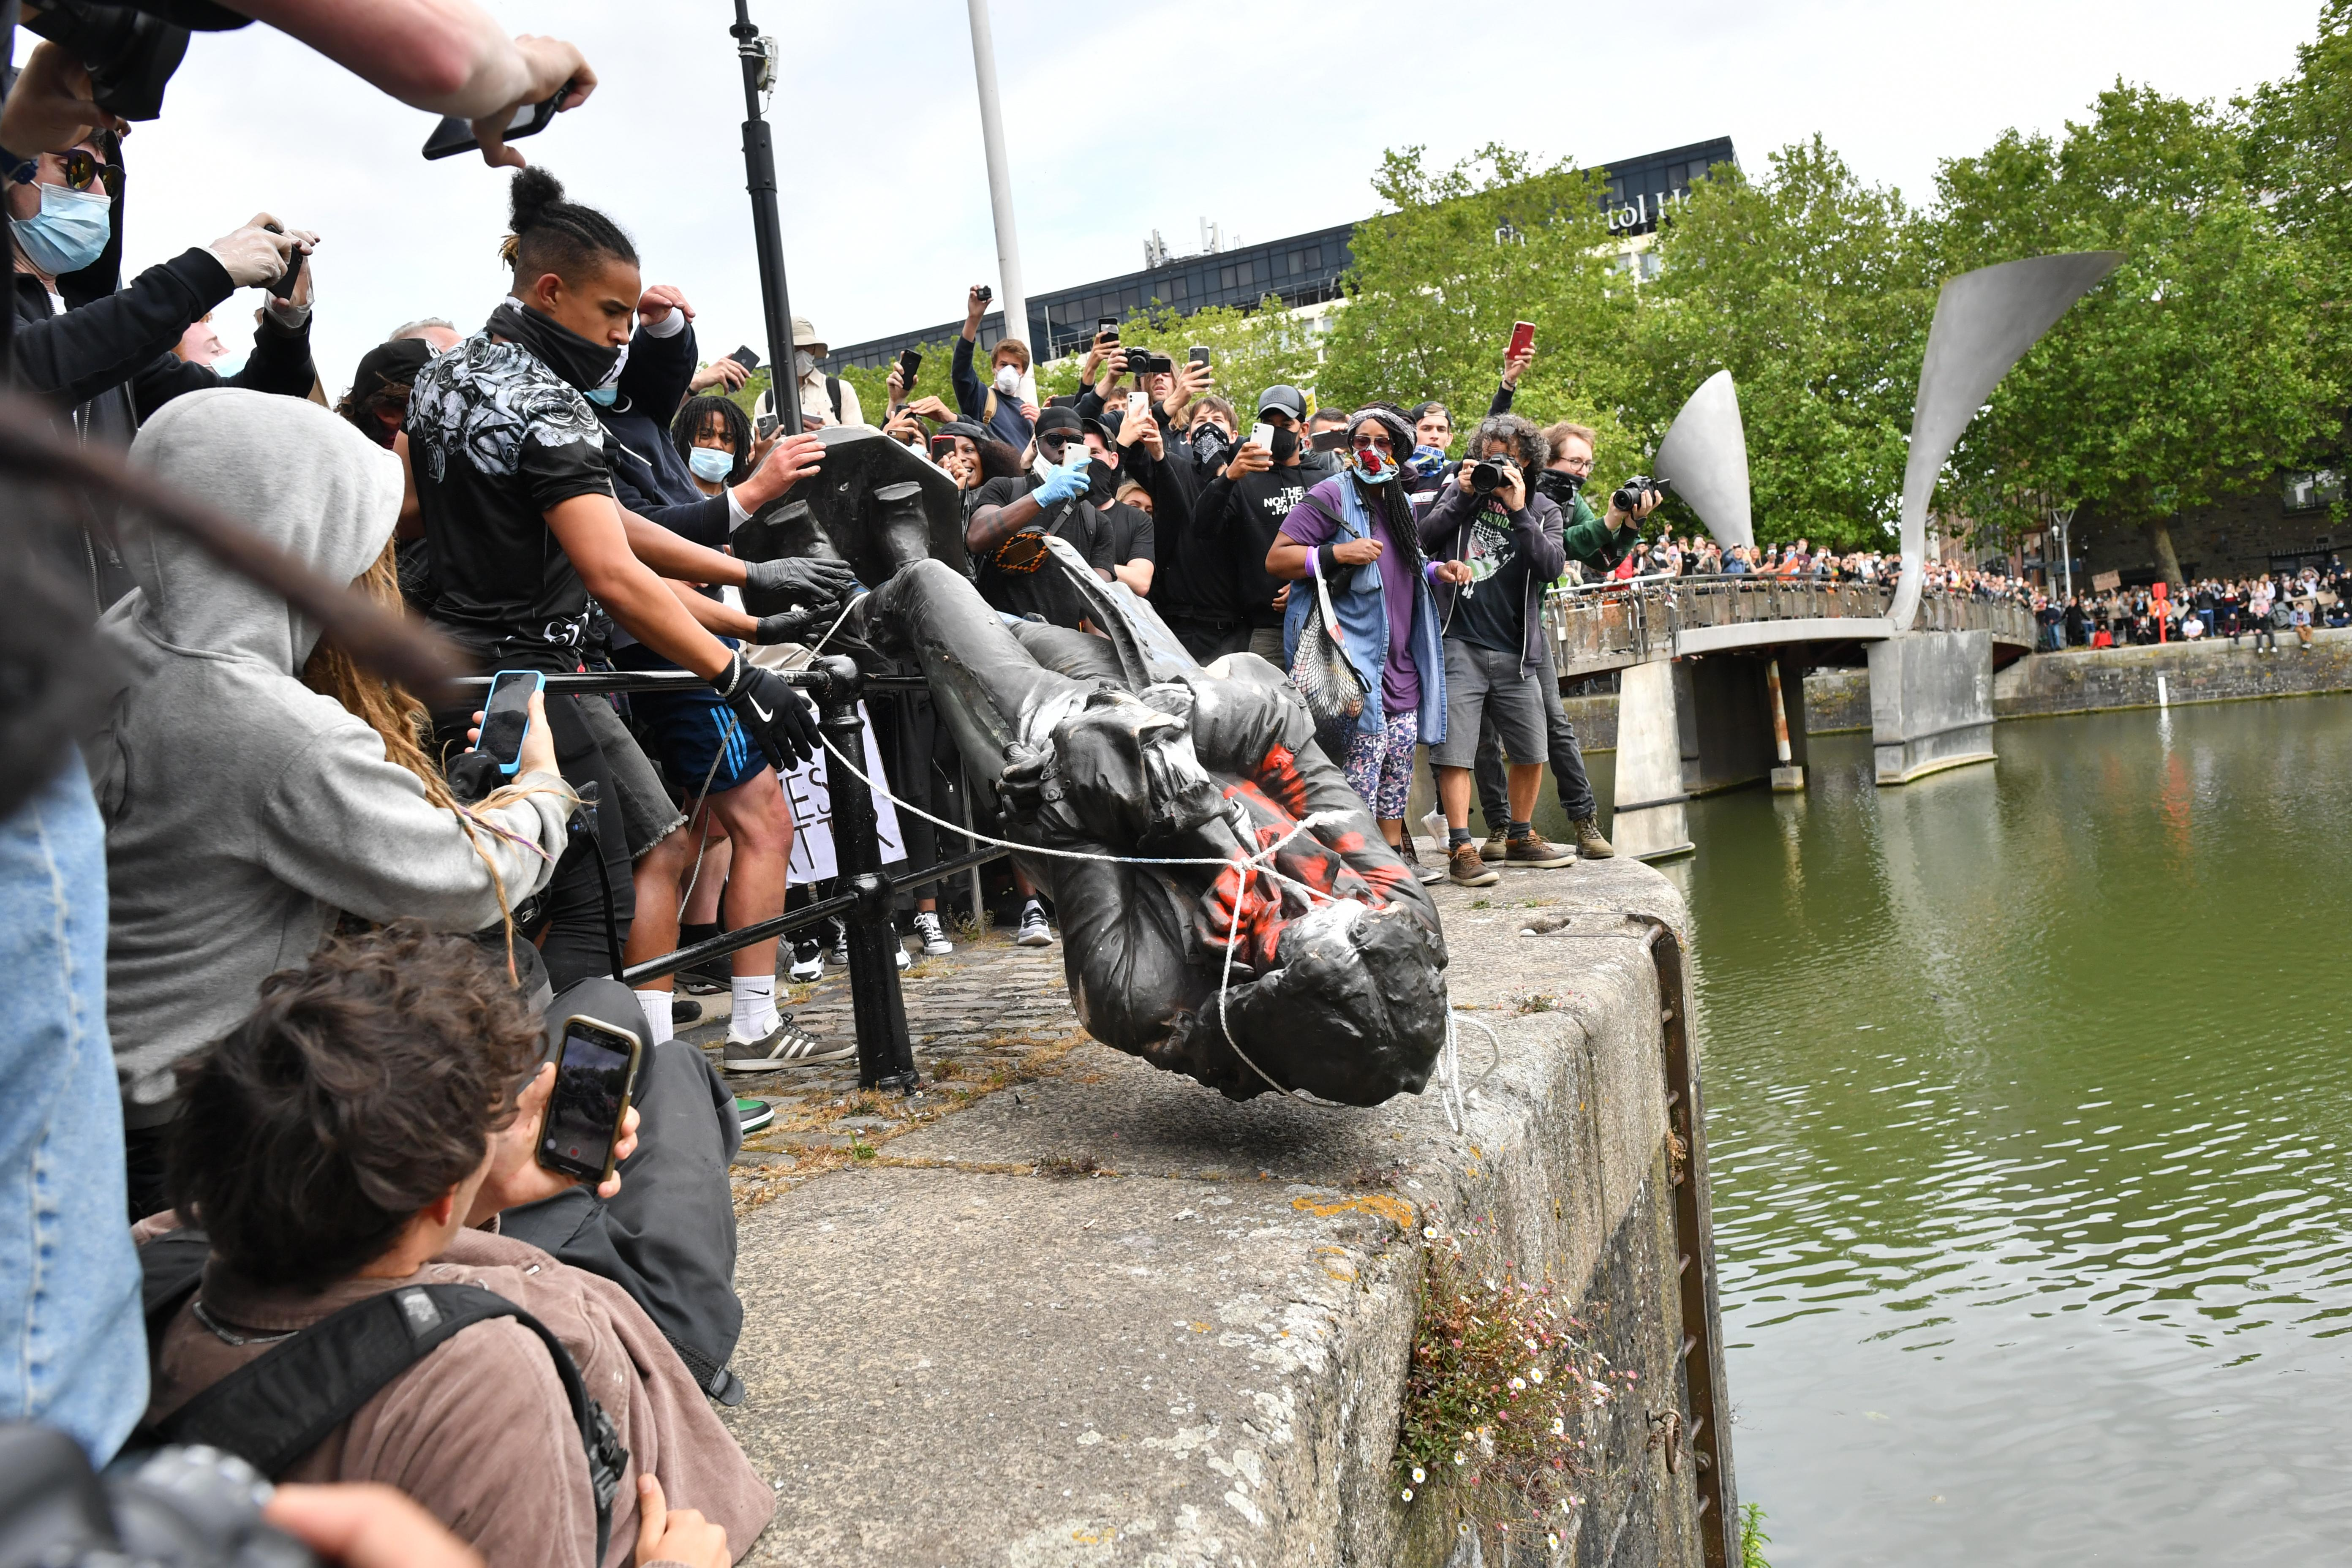 Protesters throw statue of Edward Colston into Bristol harbour during a Black Lives Matter protest rally, in memory of George Floyd who was killed on May 25 while in police custody in the US city of Minneapolis.